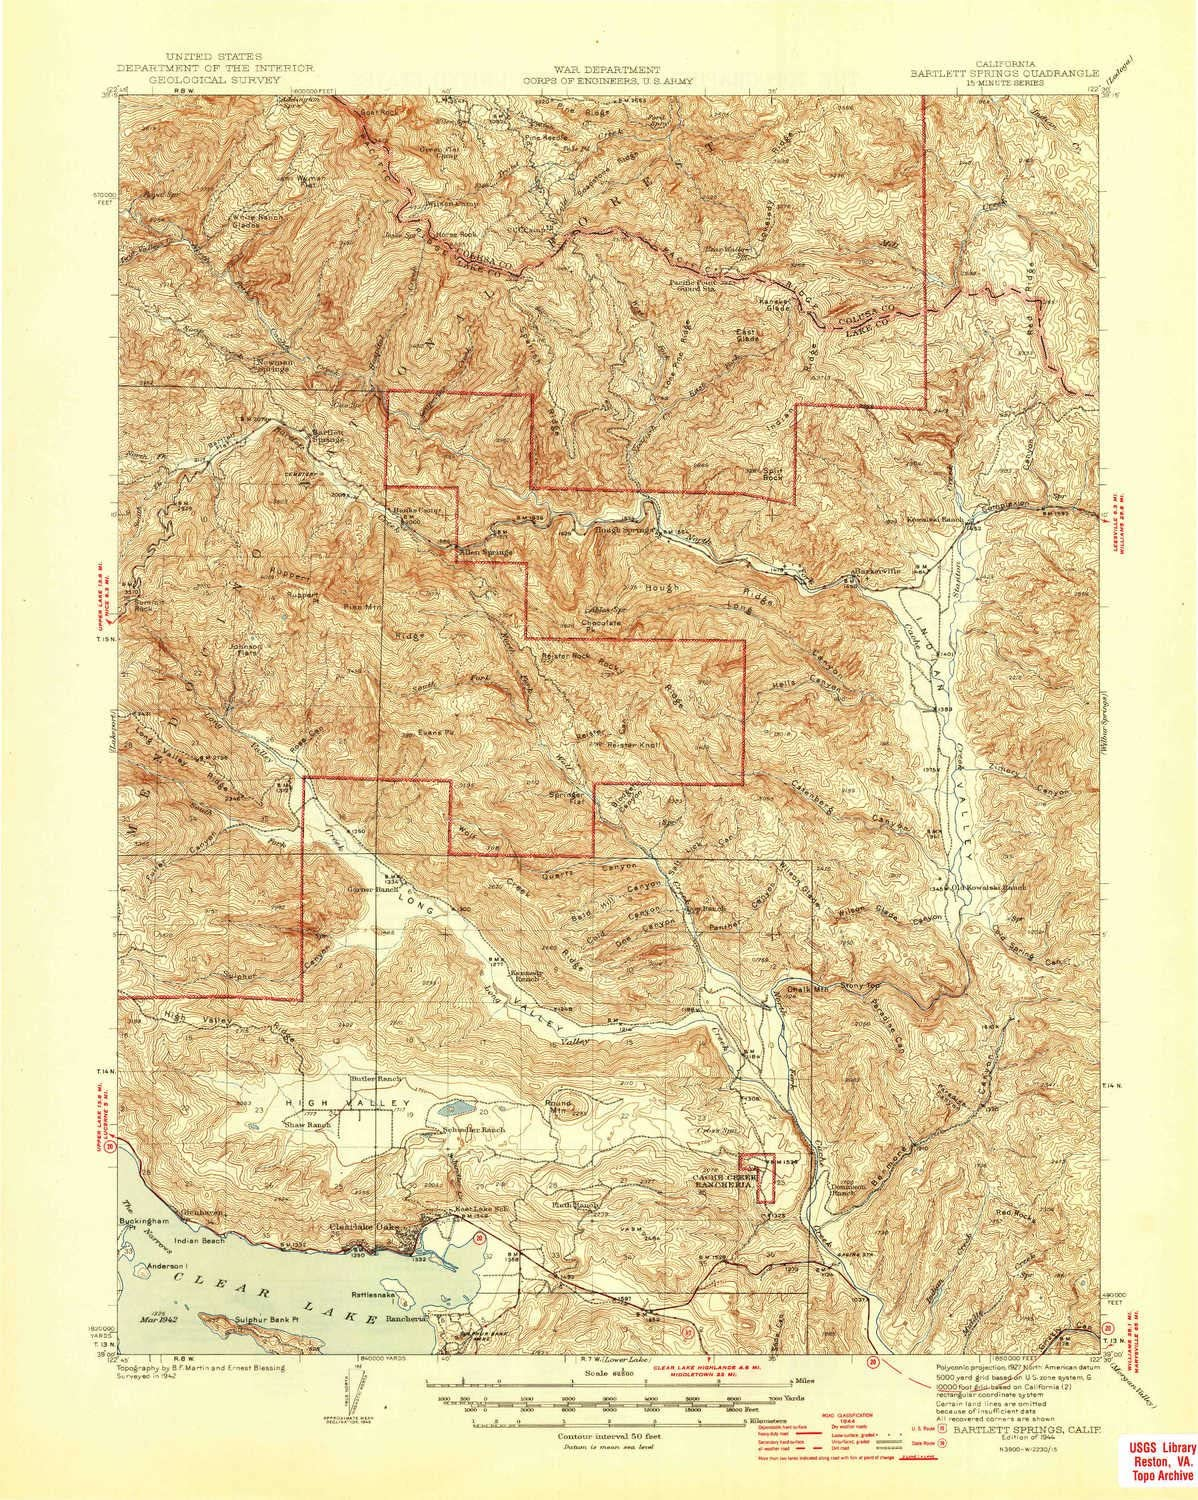 YellowMaps Bartlett Springs CA topo map 15 X 15 Minute Historical 1944 1:62500 Scale 20.8 x 16.6 in